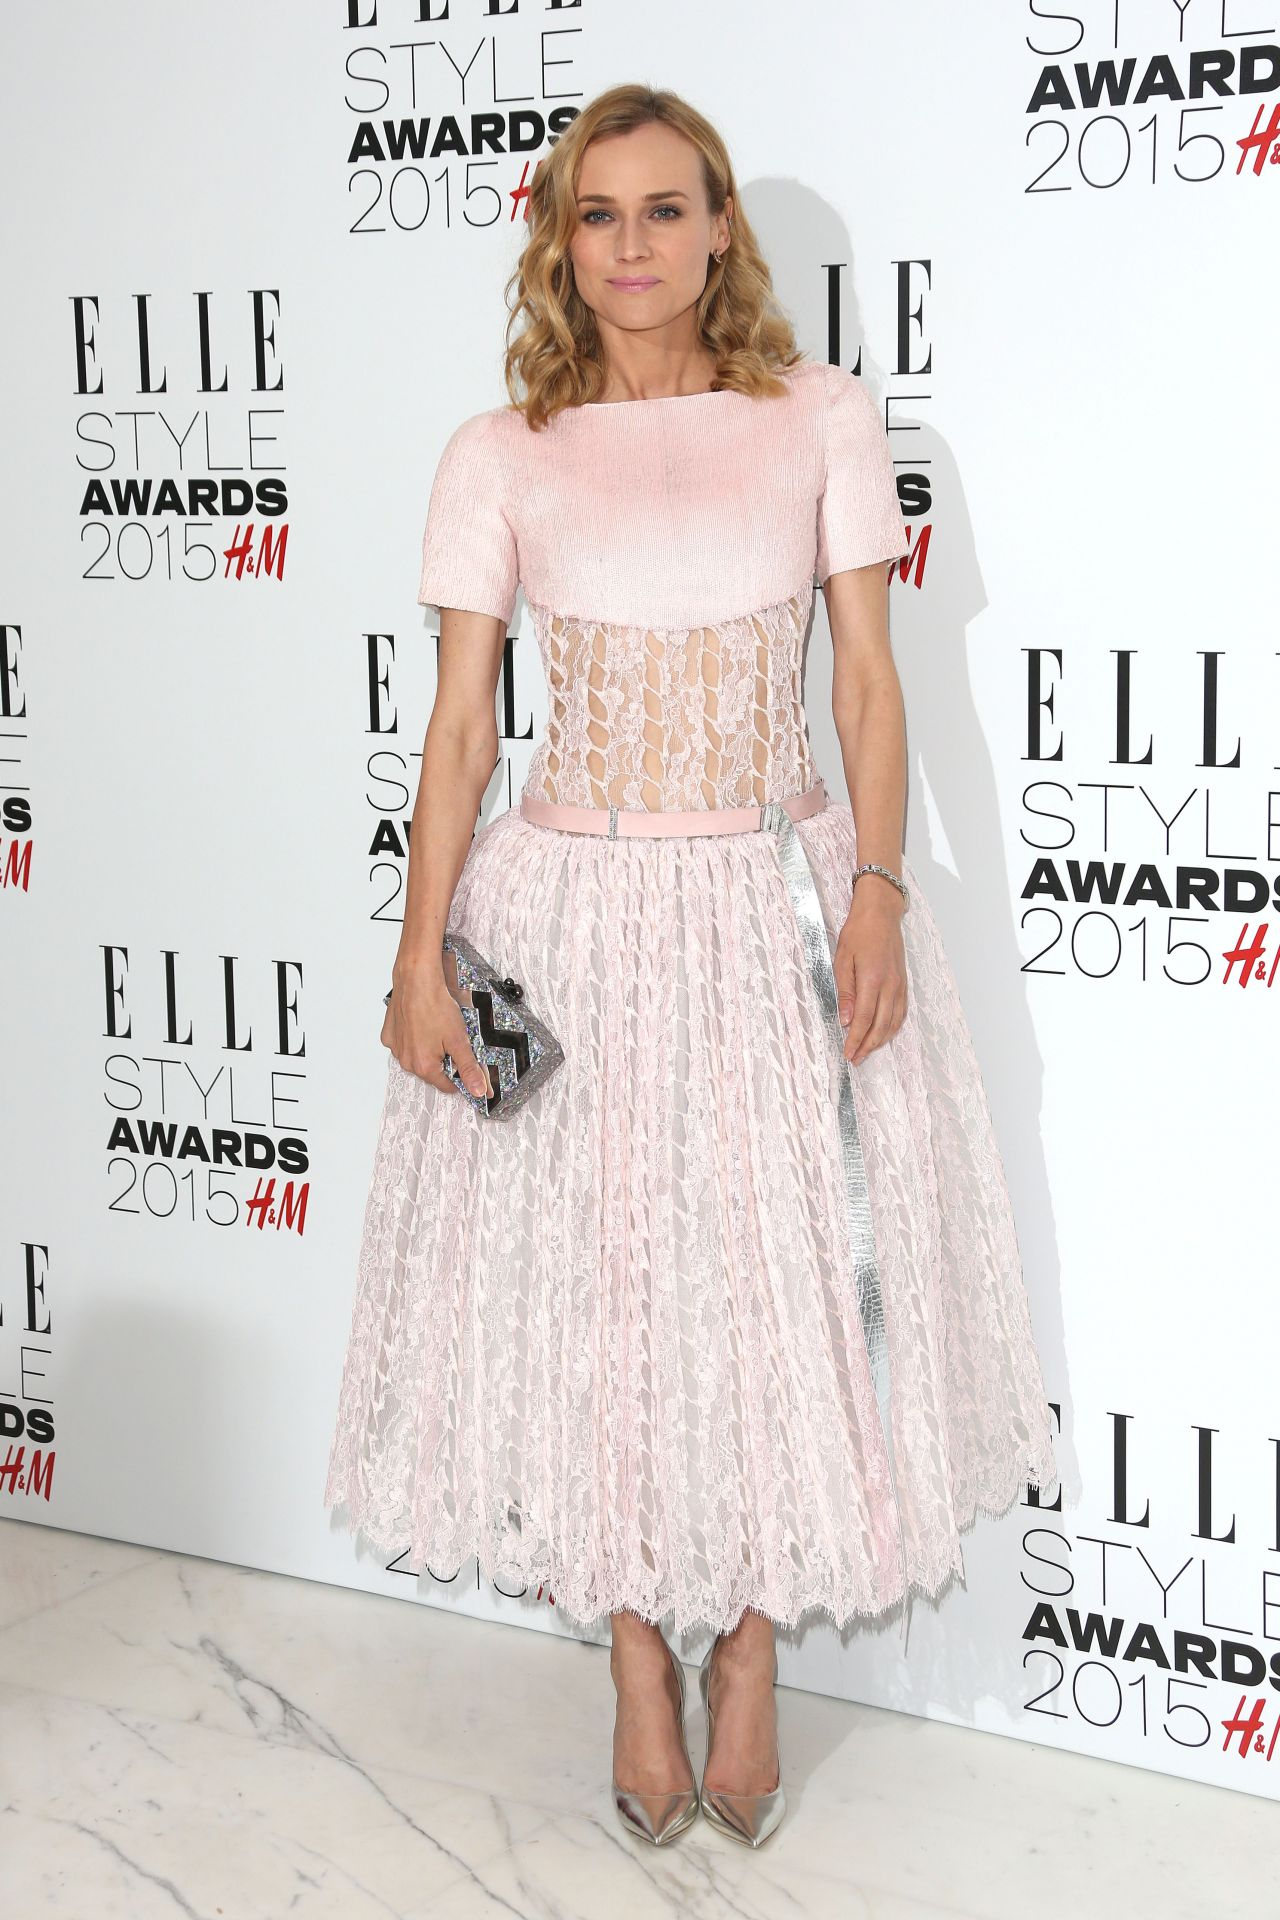 diane-kruger-chanel-couture-2015-elle-style-awards